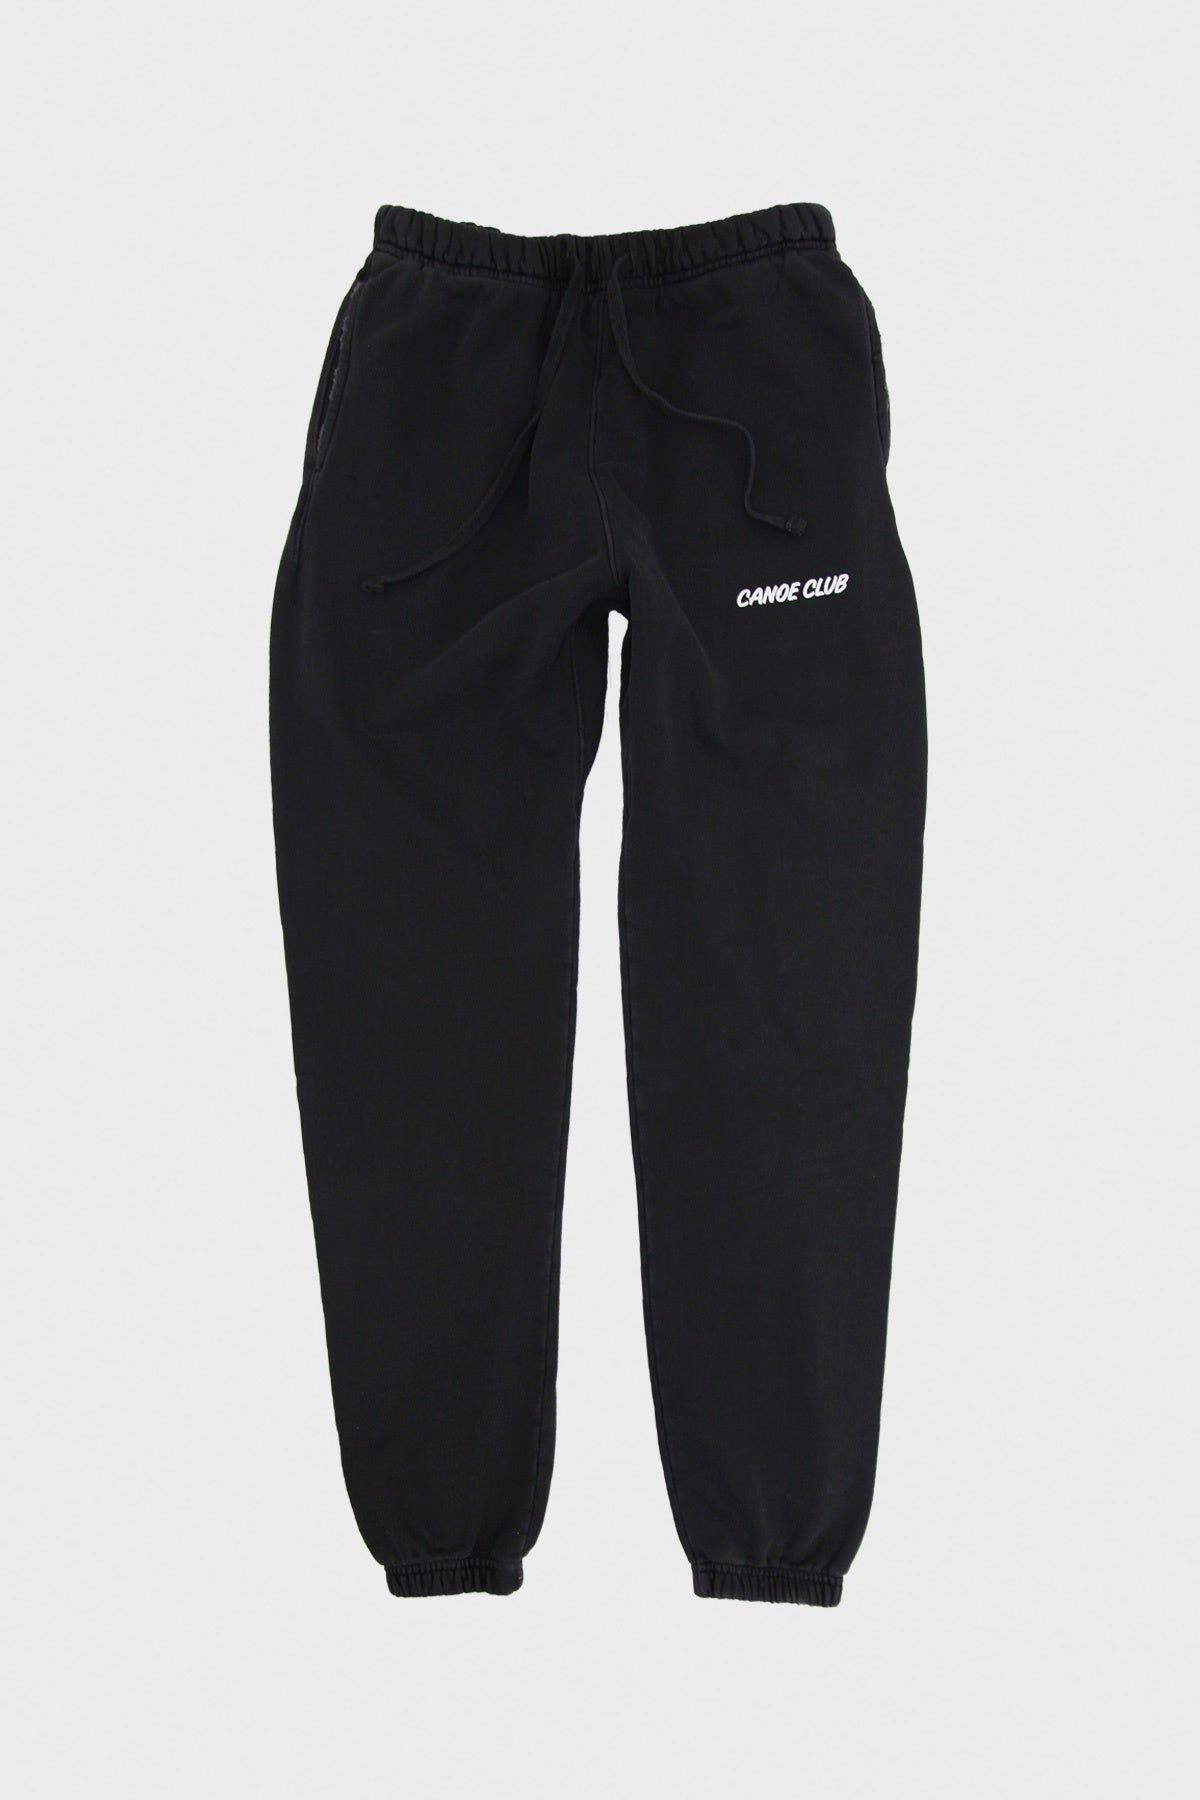 Canoe Club Collaborations - Canoe Club Sweats - Pigment Dyed Black - Canoe Club